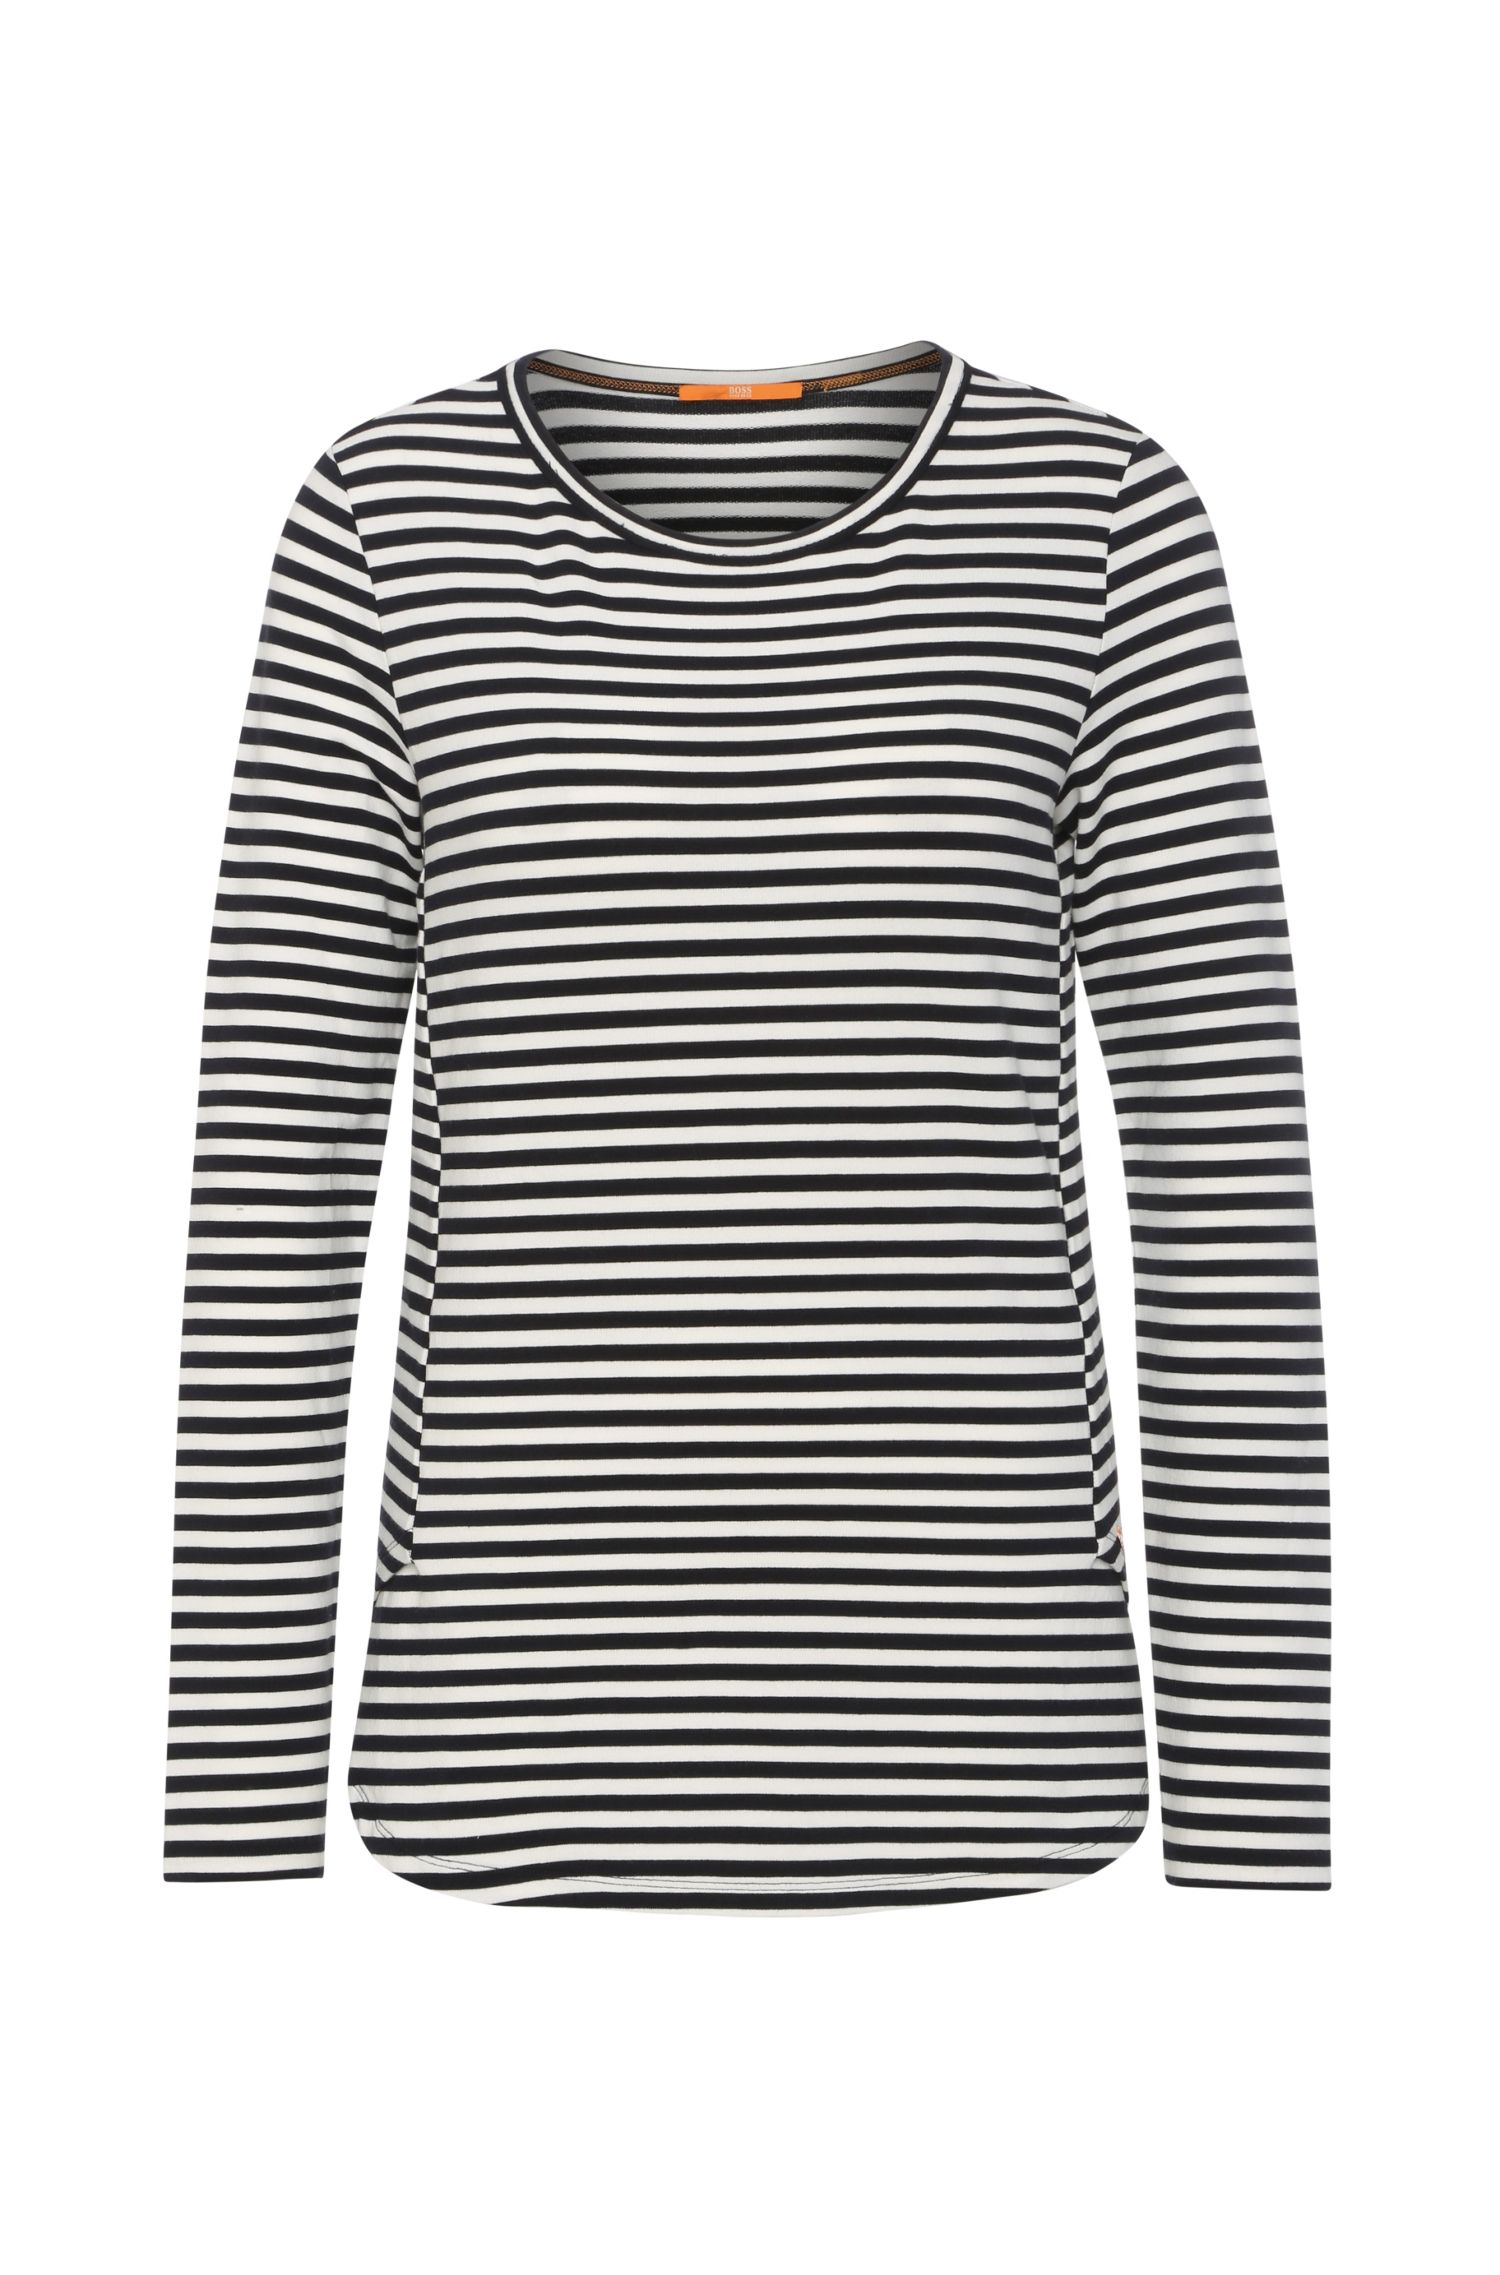 Slim-fit sweatshirt in stretch viscose blend with cotton: 'Terstripe'